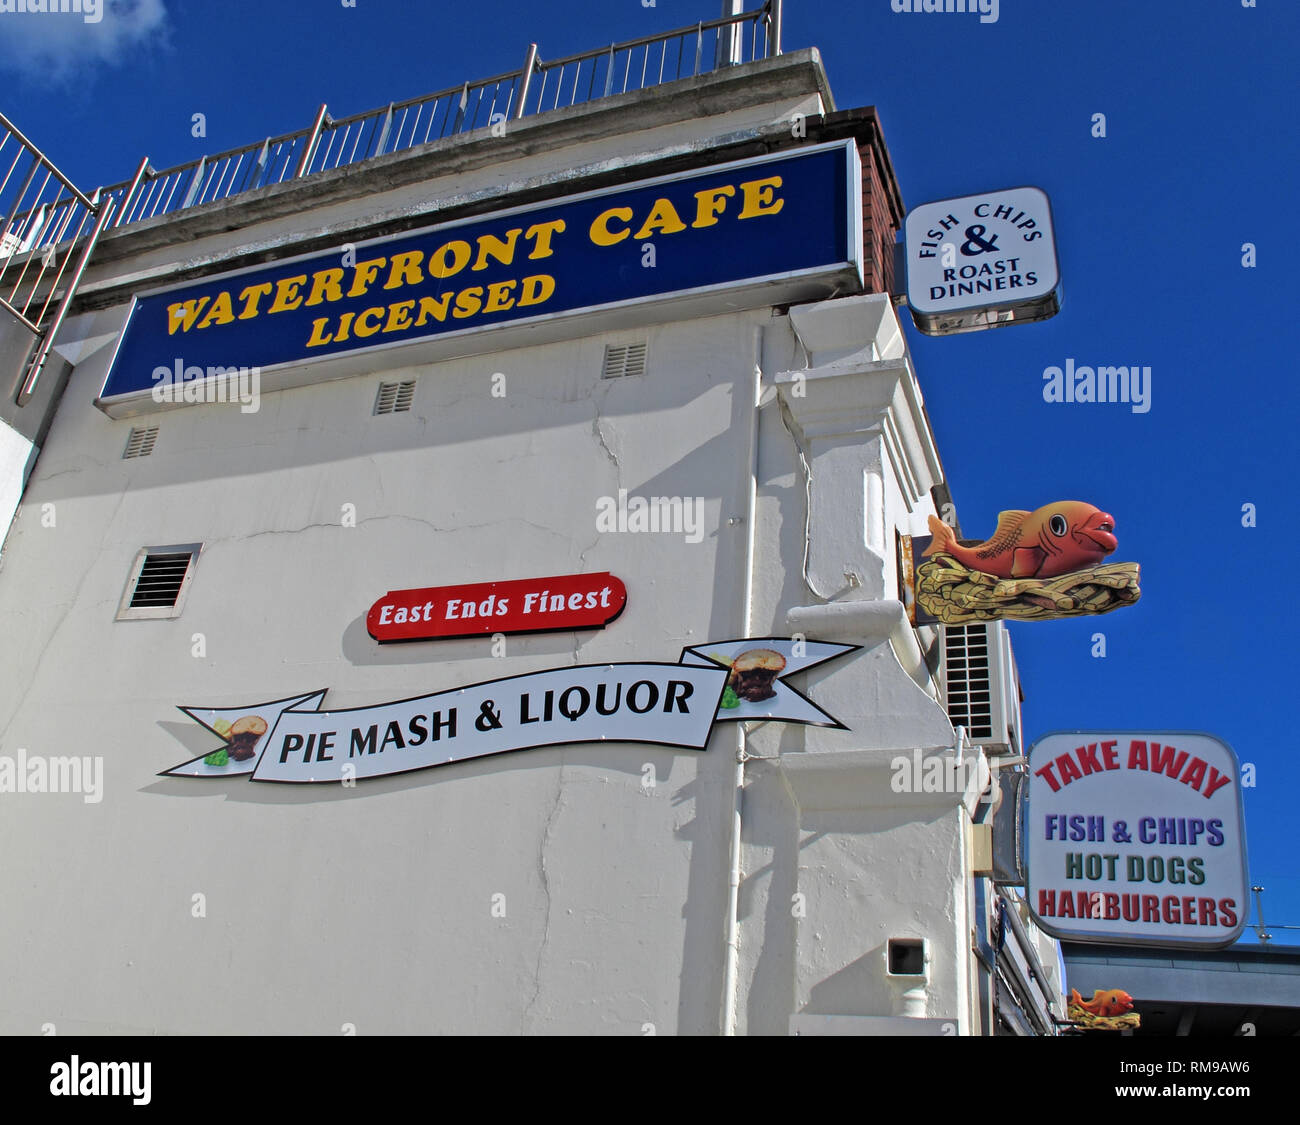 Southend, Waterfront Cafe, Fast Food, East Ends Finest Pie and Mash, Liquor, Fish & Chips, Roast Dinners, Southend Seafront, Essex, England, UK - Stock Image